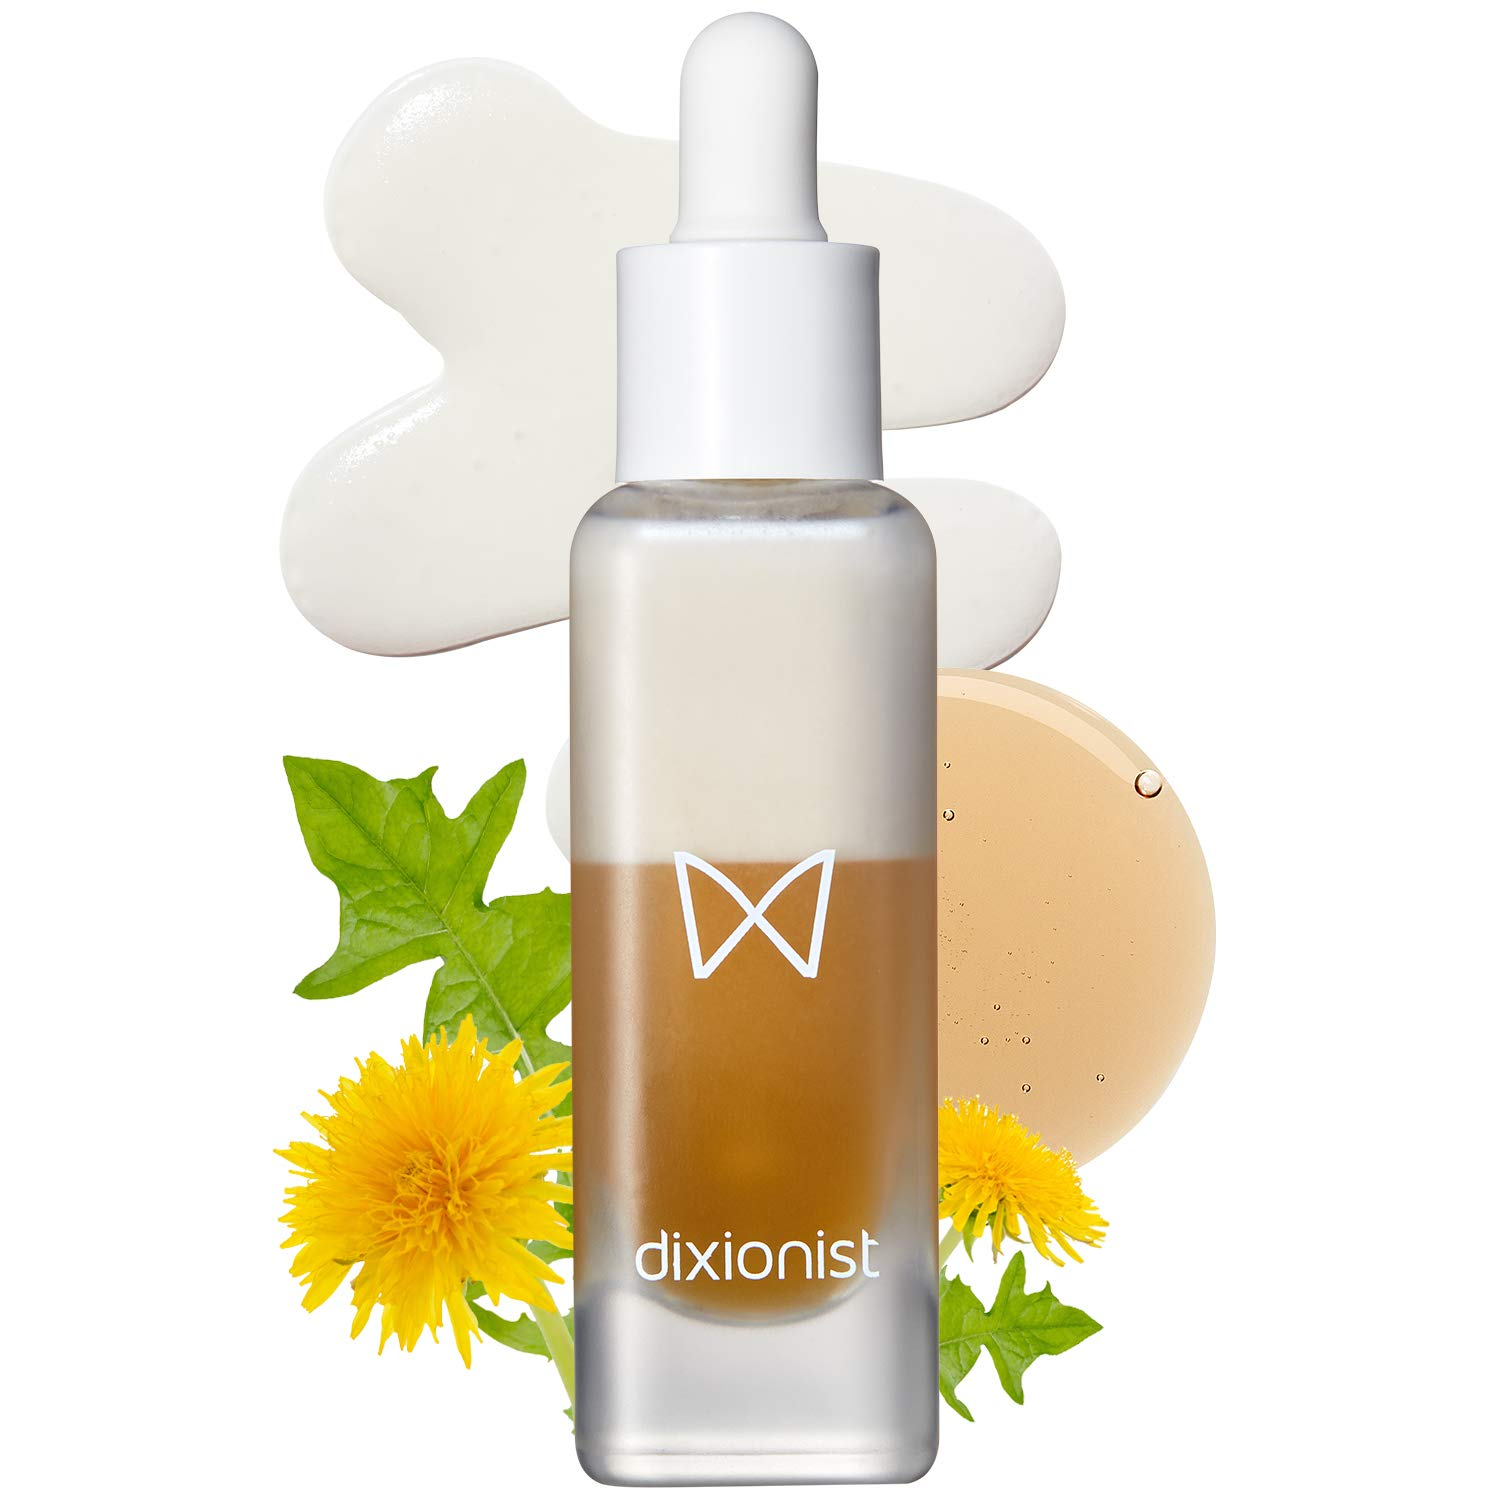 It is very popular DIXIONIST Lively Dandeleaf Crema Ampoule Our shop most popular fl.oz. 30ml 1.01 Po